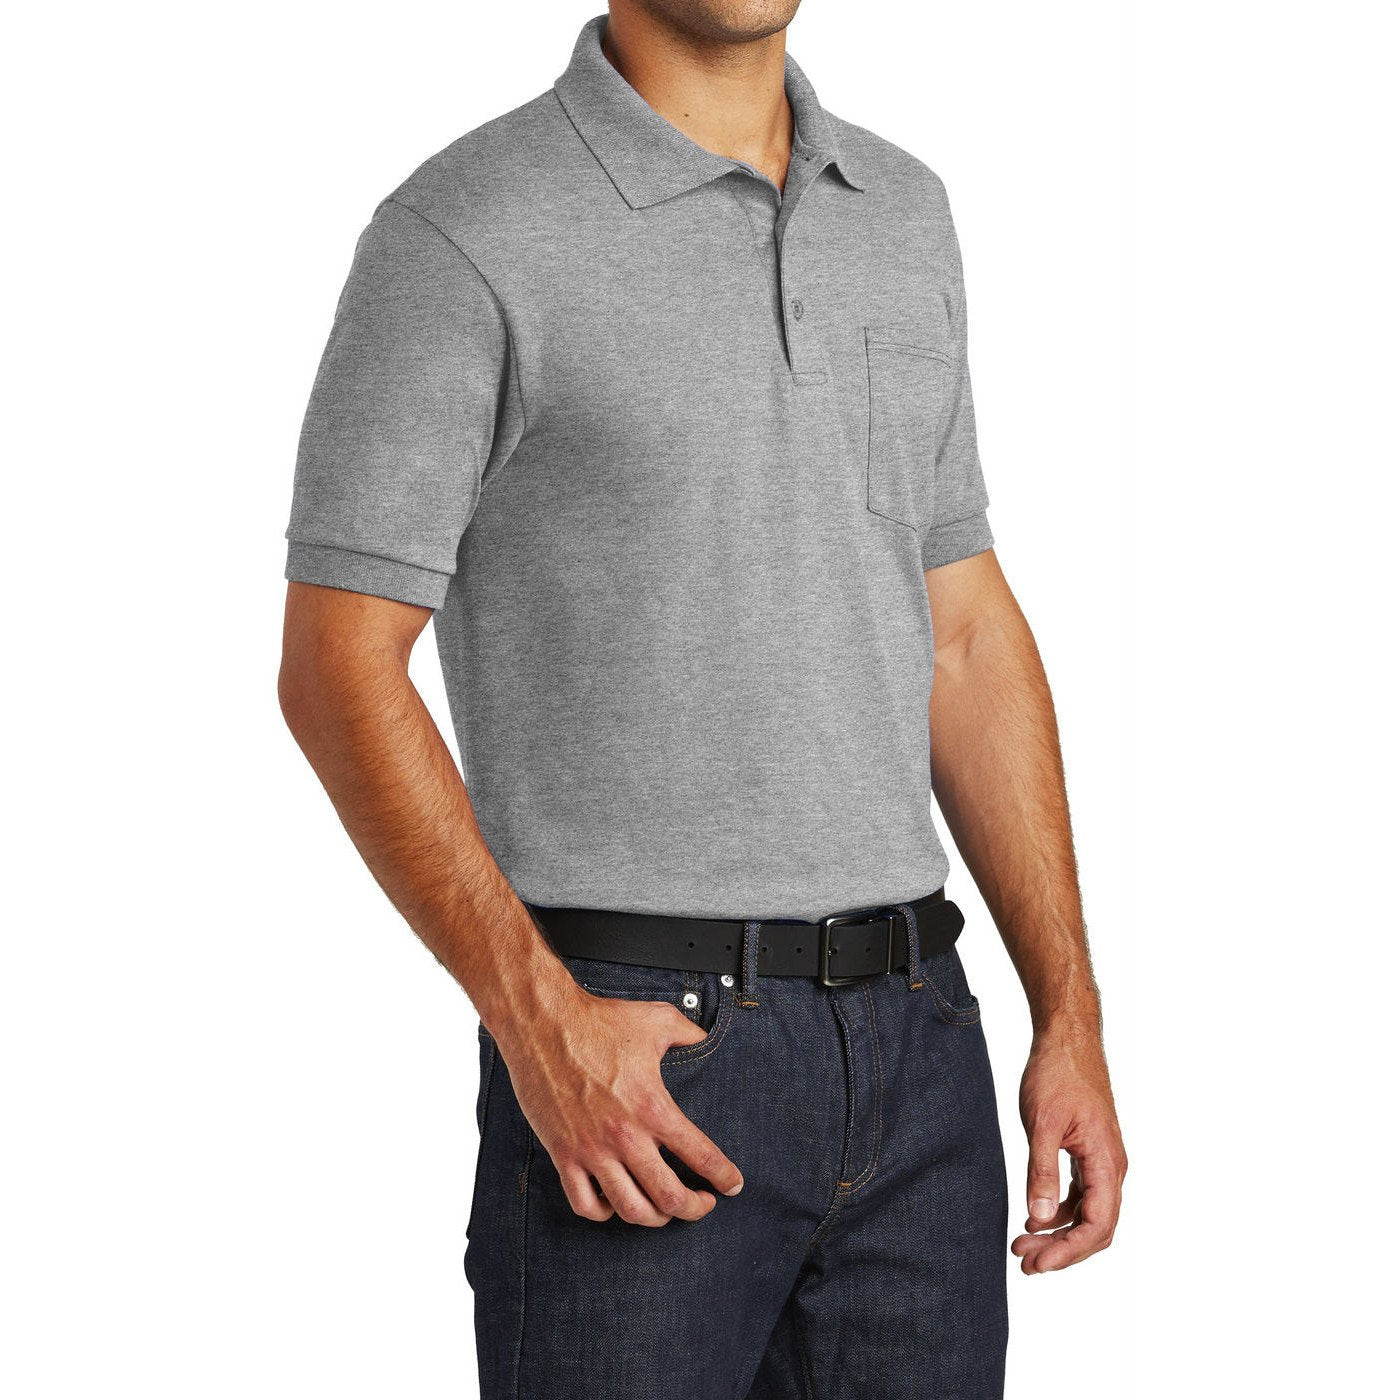 Mafoose Men's Core Blend Jersey Knit Pocket Polo Shirt Athletic Heather